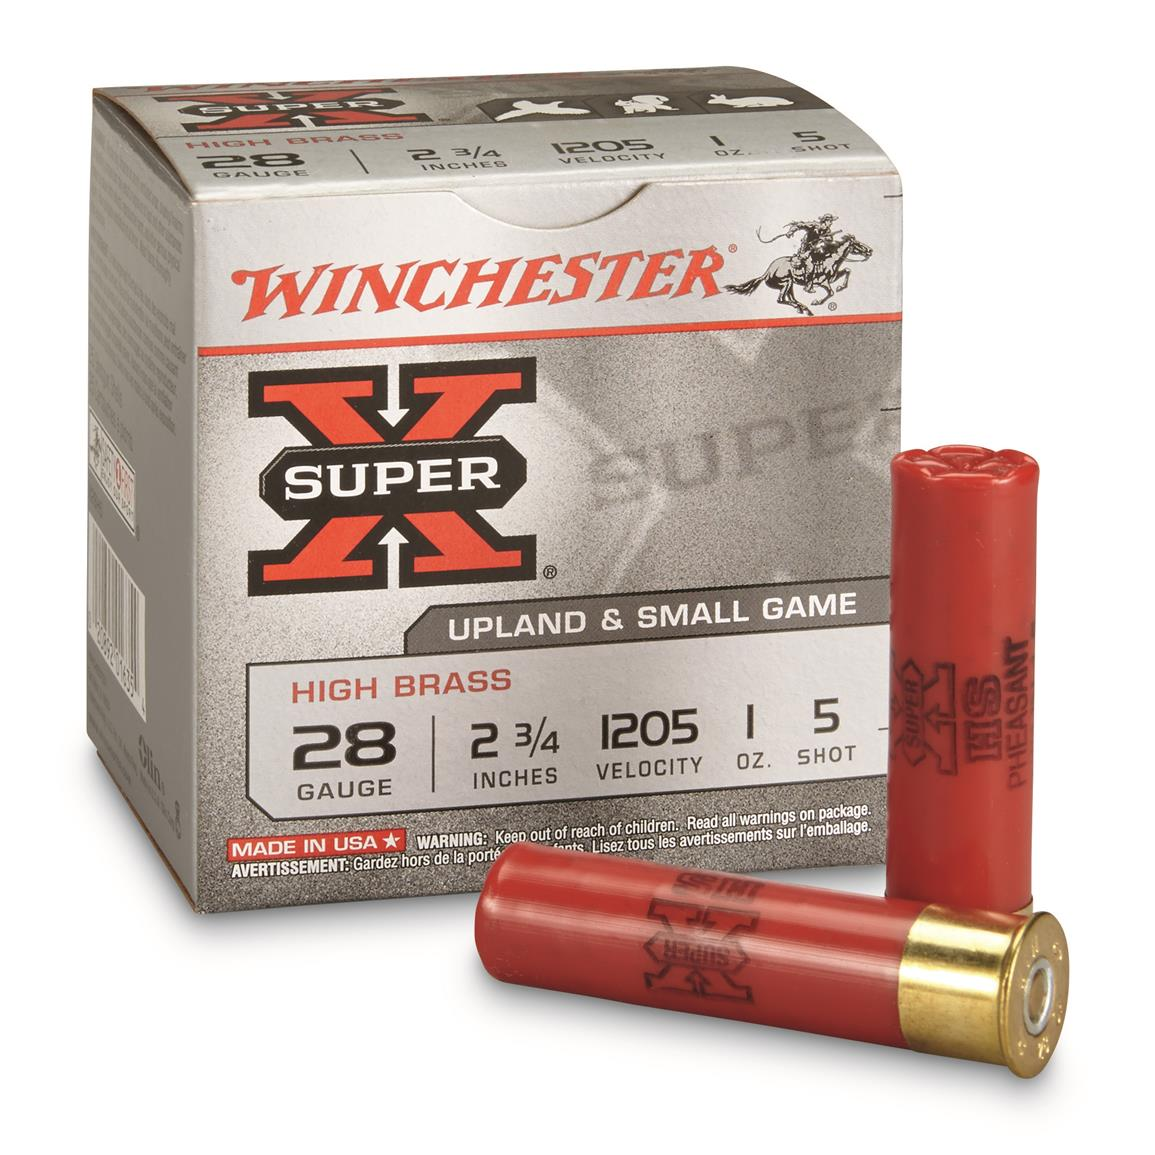 "Winchester, Super-X High Brass Game Loads, 28 Gauge, 2 3/4"" 1 ozs., 25 Rounds"